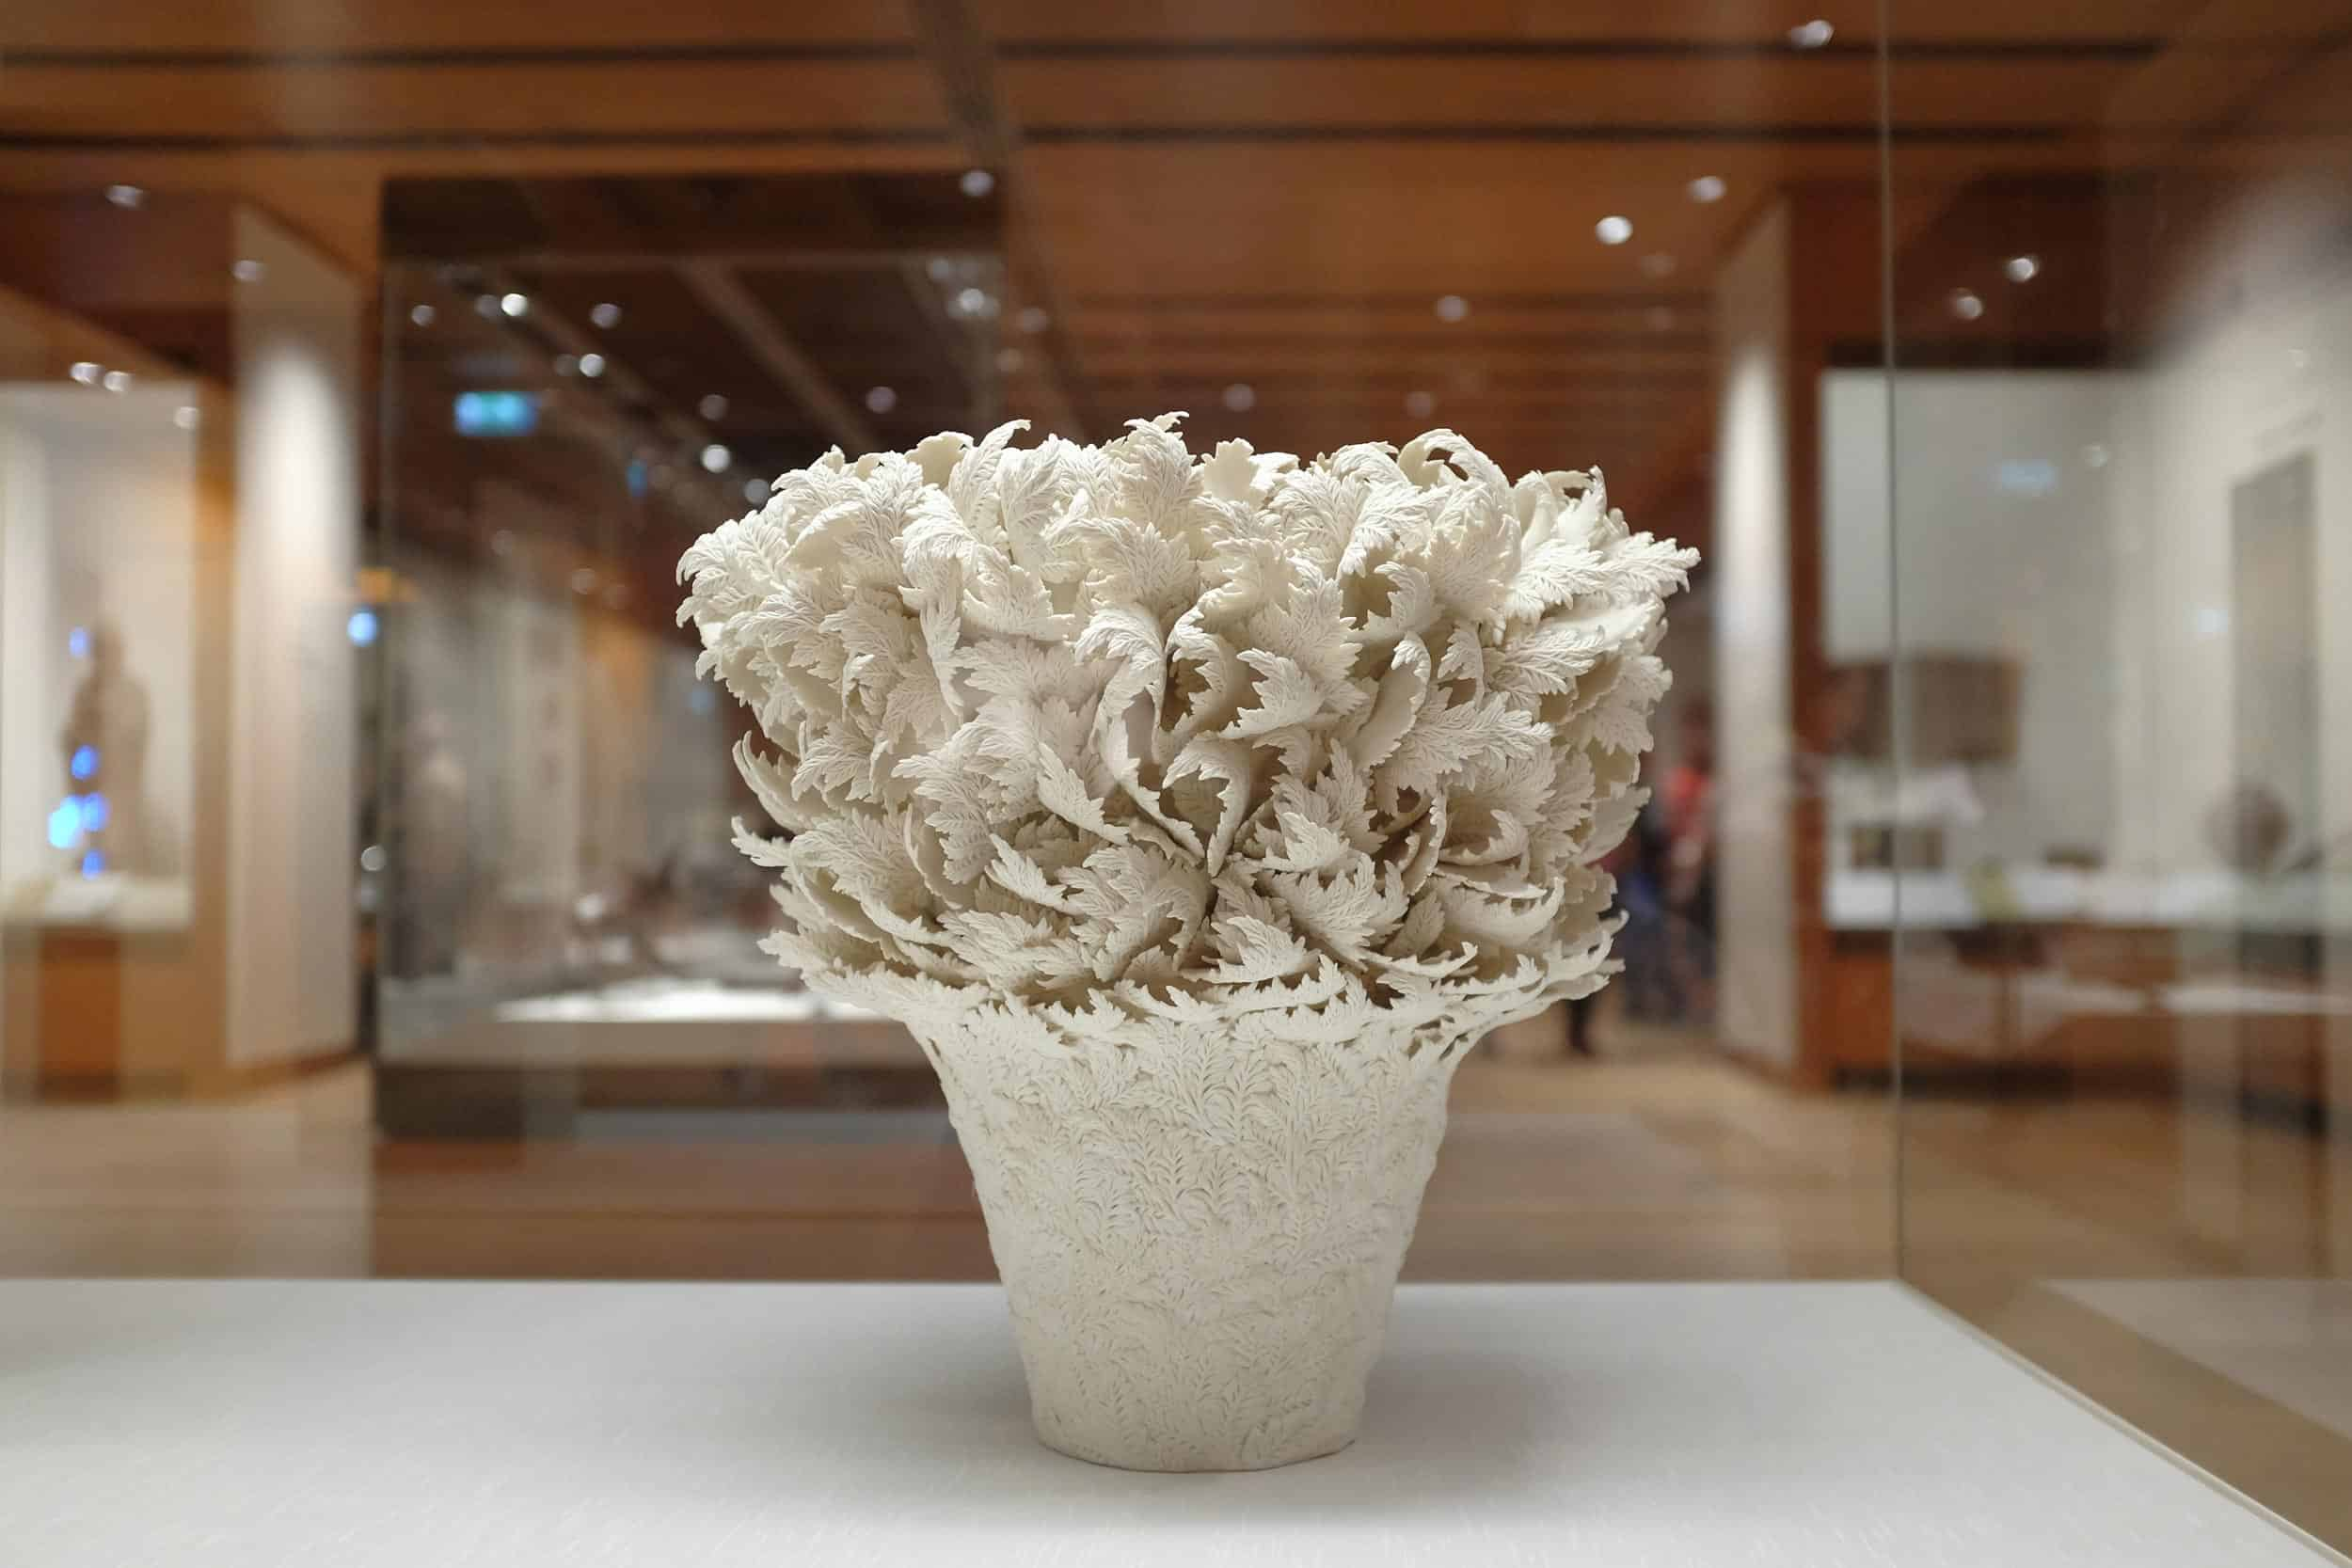 Sculpture by Hitomi Hosono at the British Museum